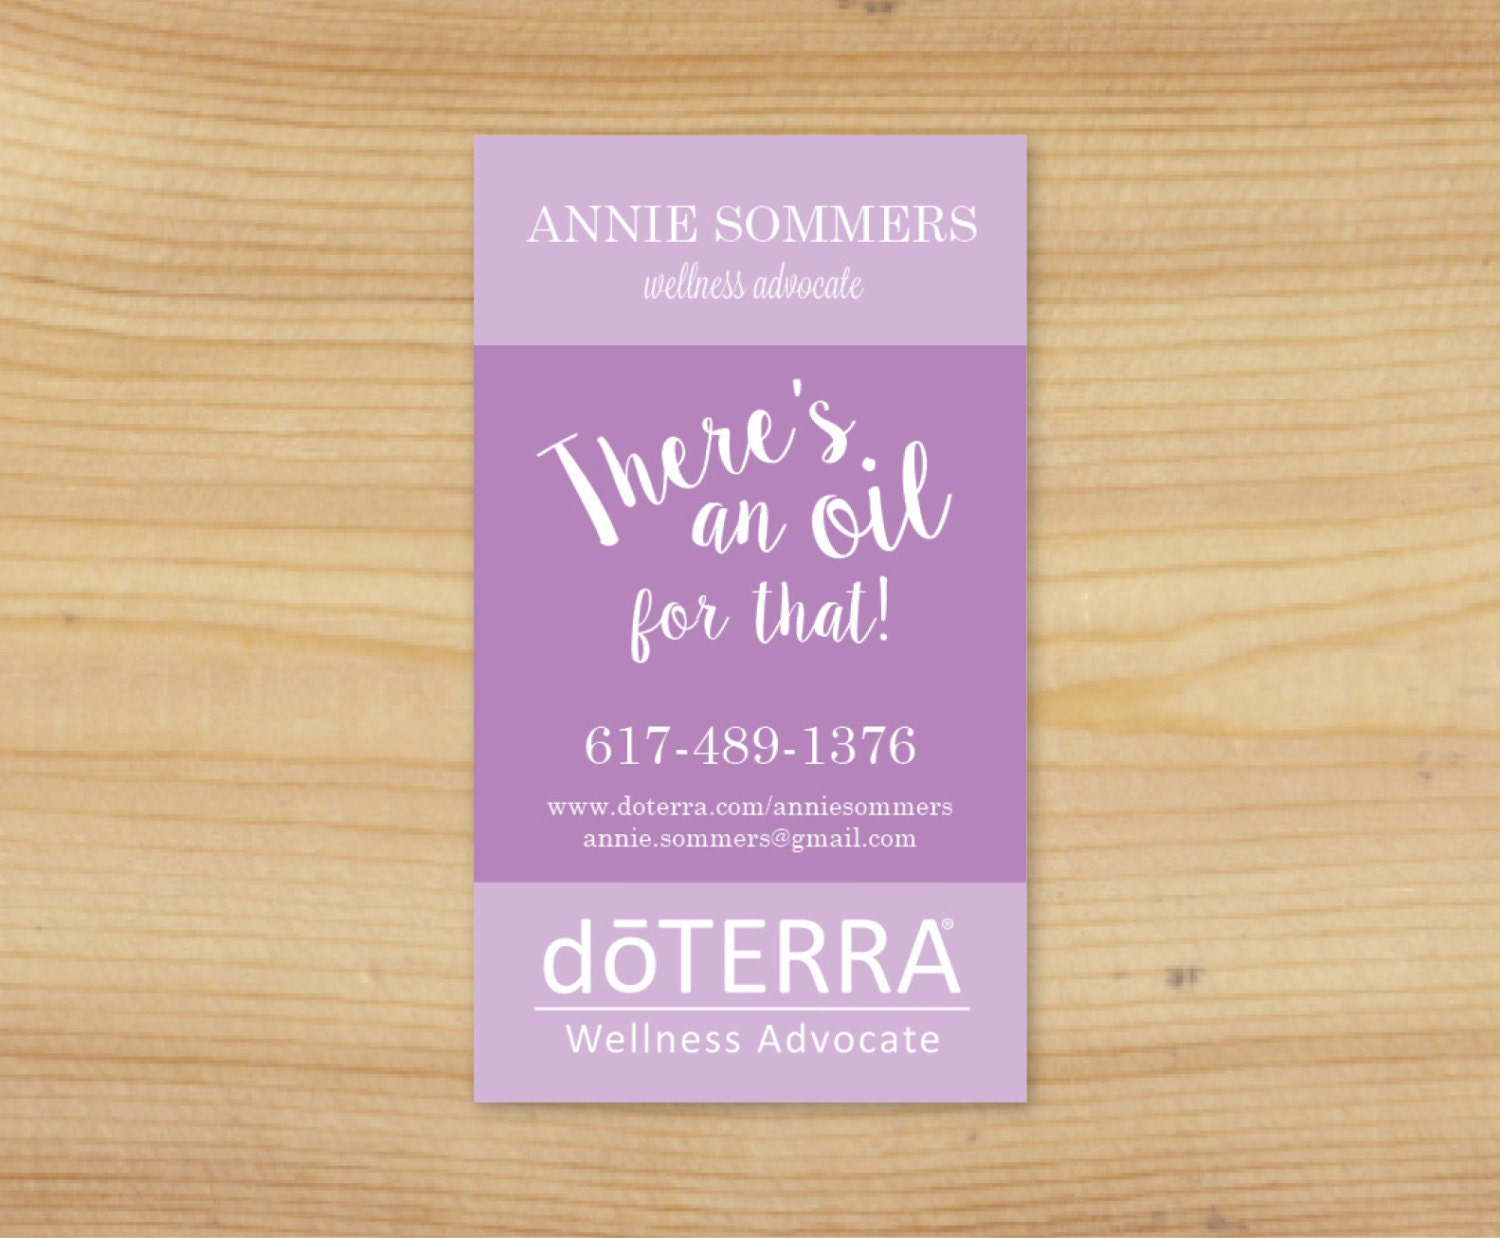 colorful essential oil business card design by TheOilsMama